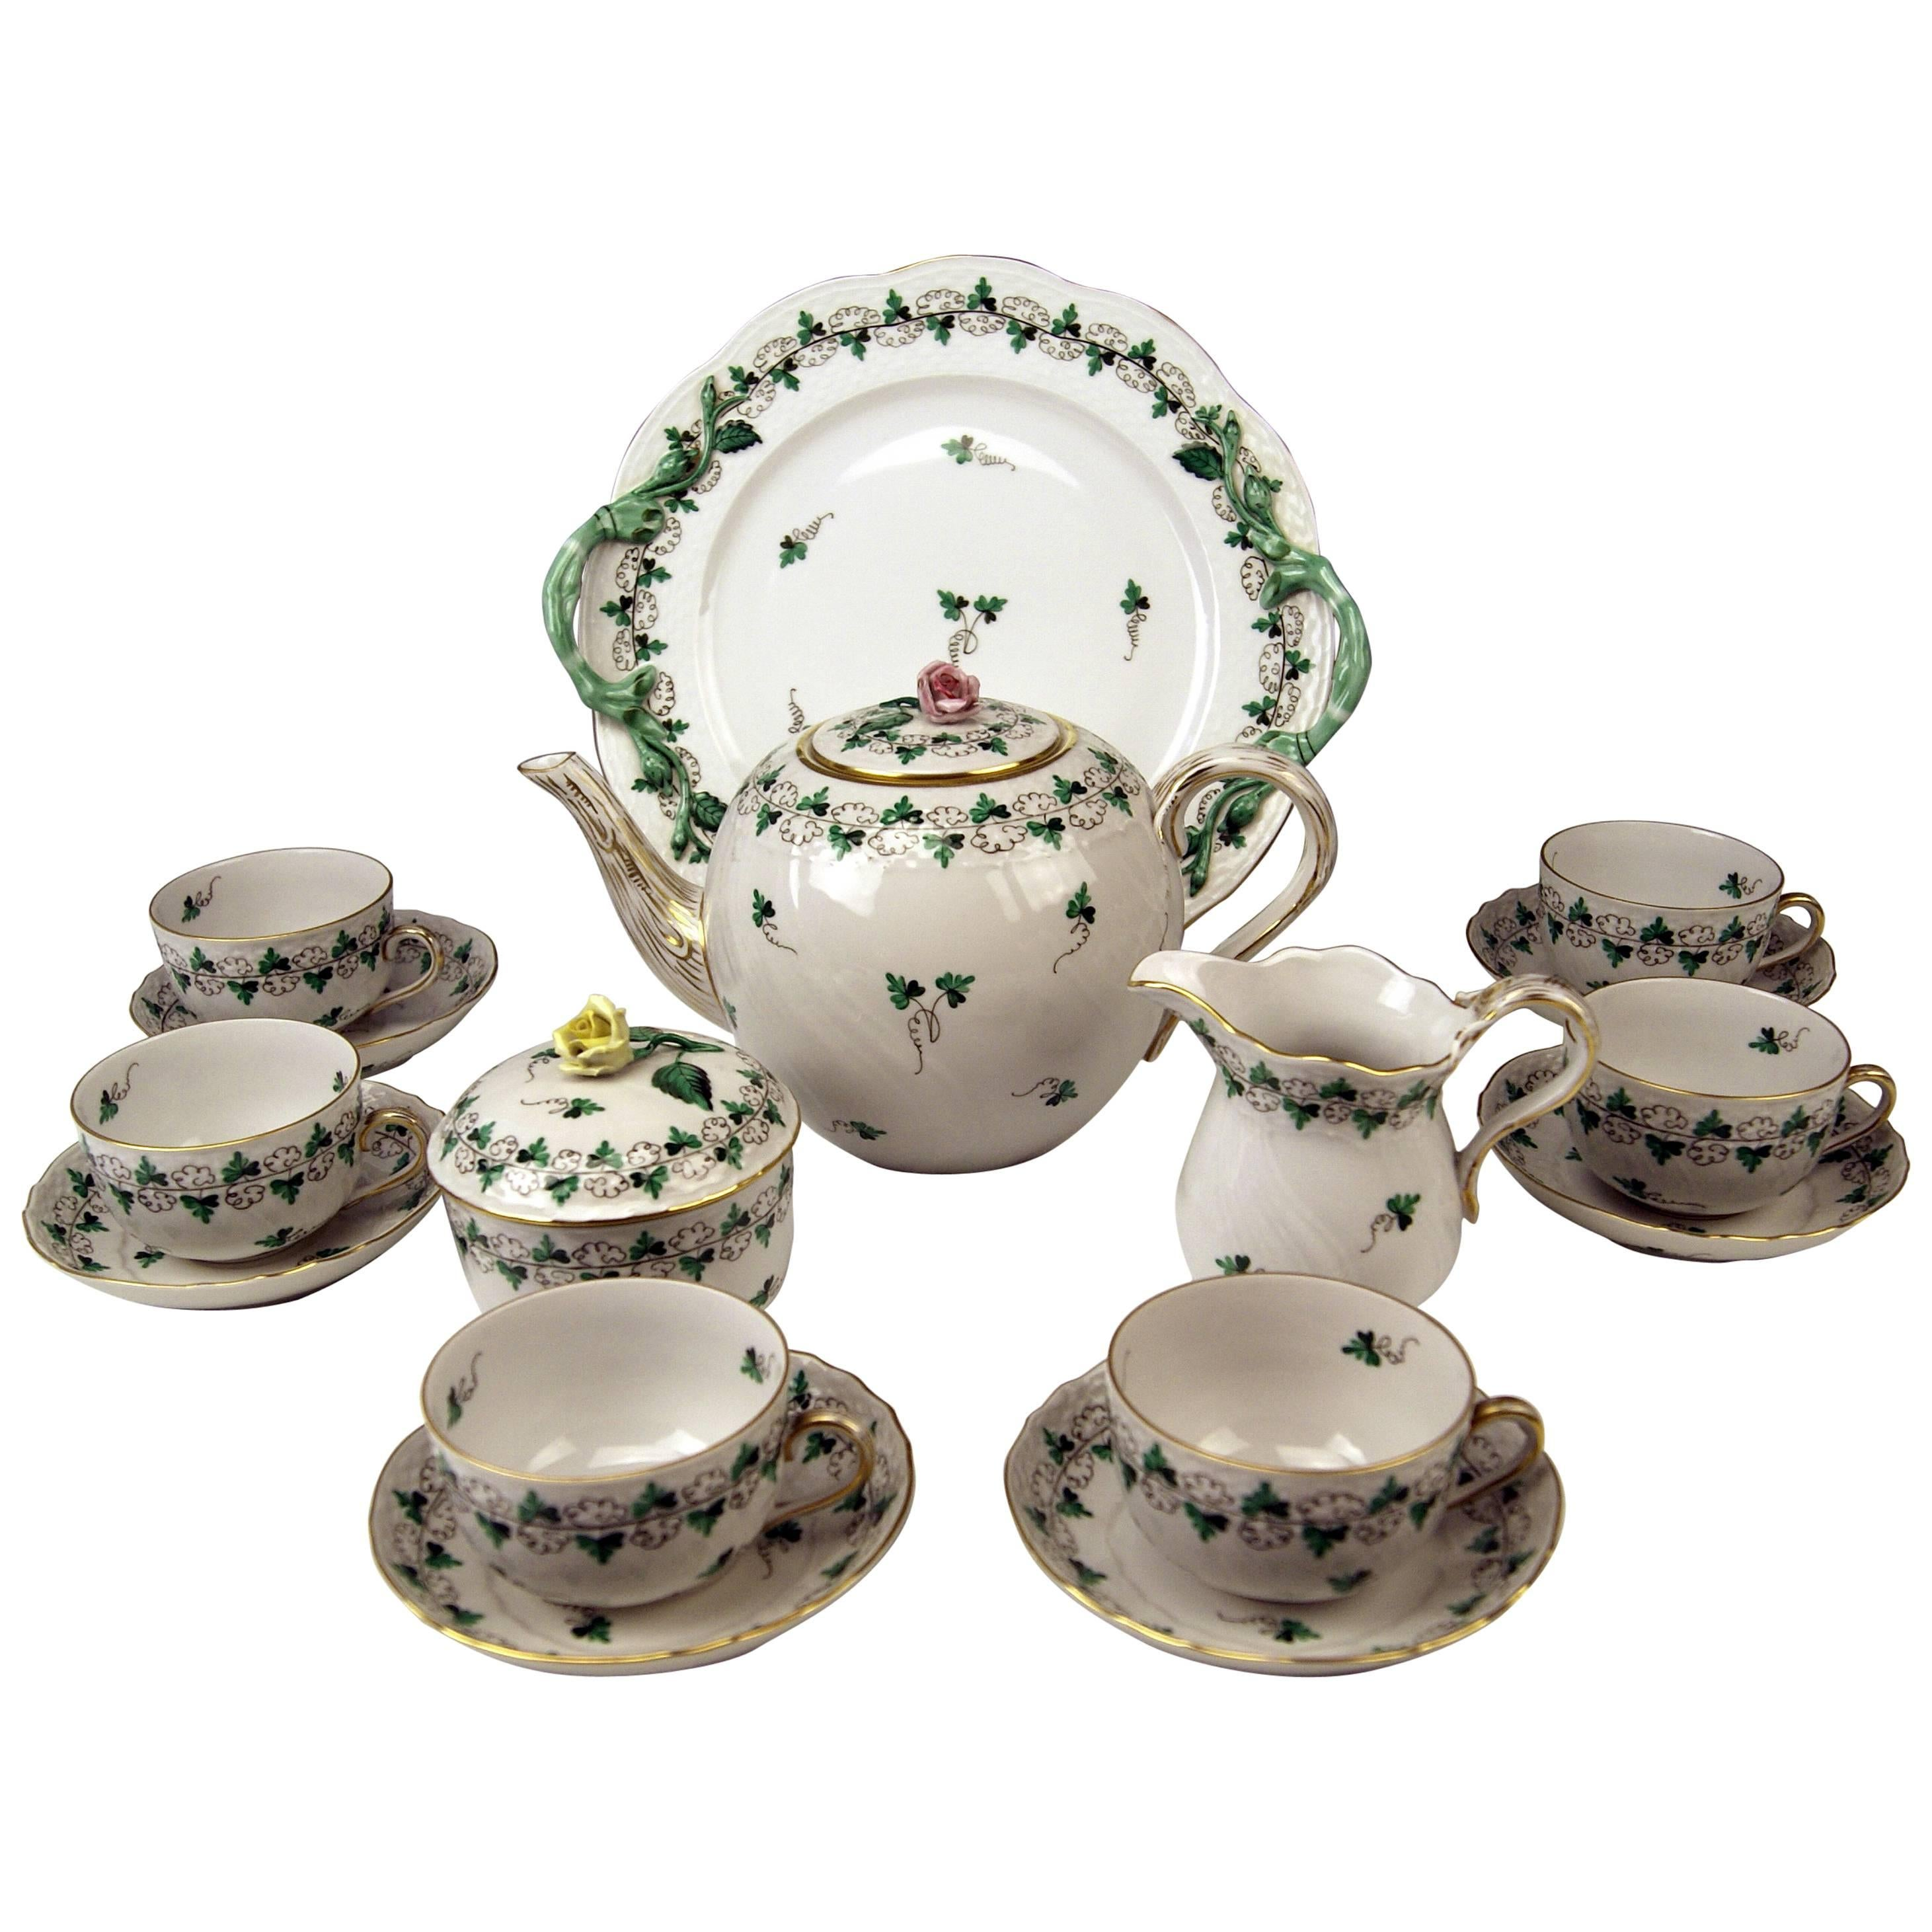 Herend Tea Set for Six Persons Decor Persil, circa 1960